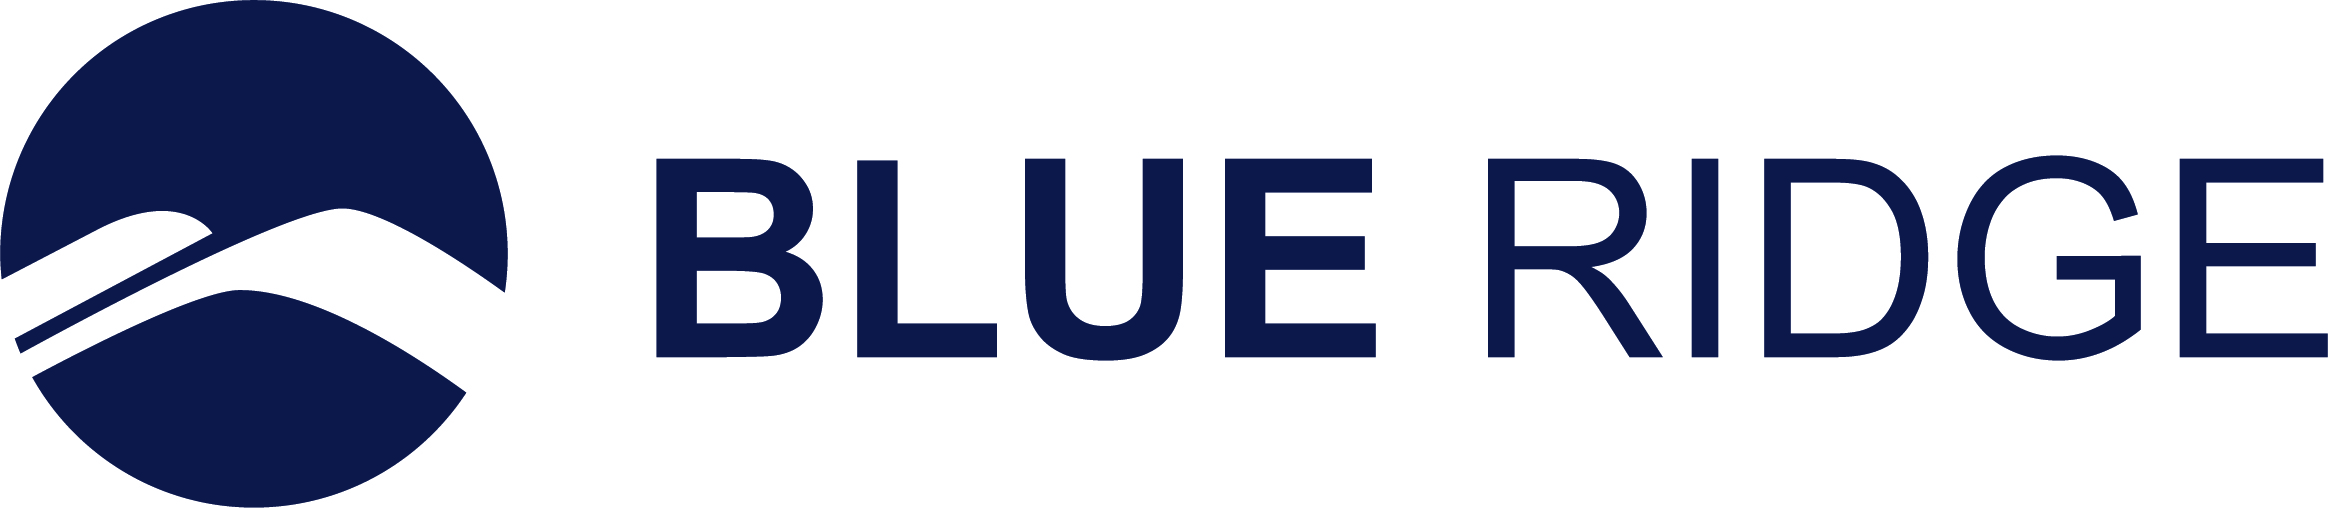 Blue Ridge Suggests Automating Supply Chain Planning with Price Optimization Brings Increased Efficiency